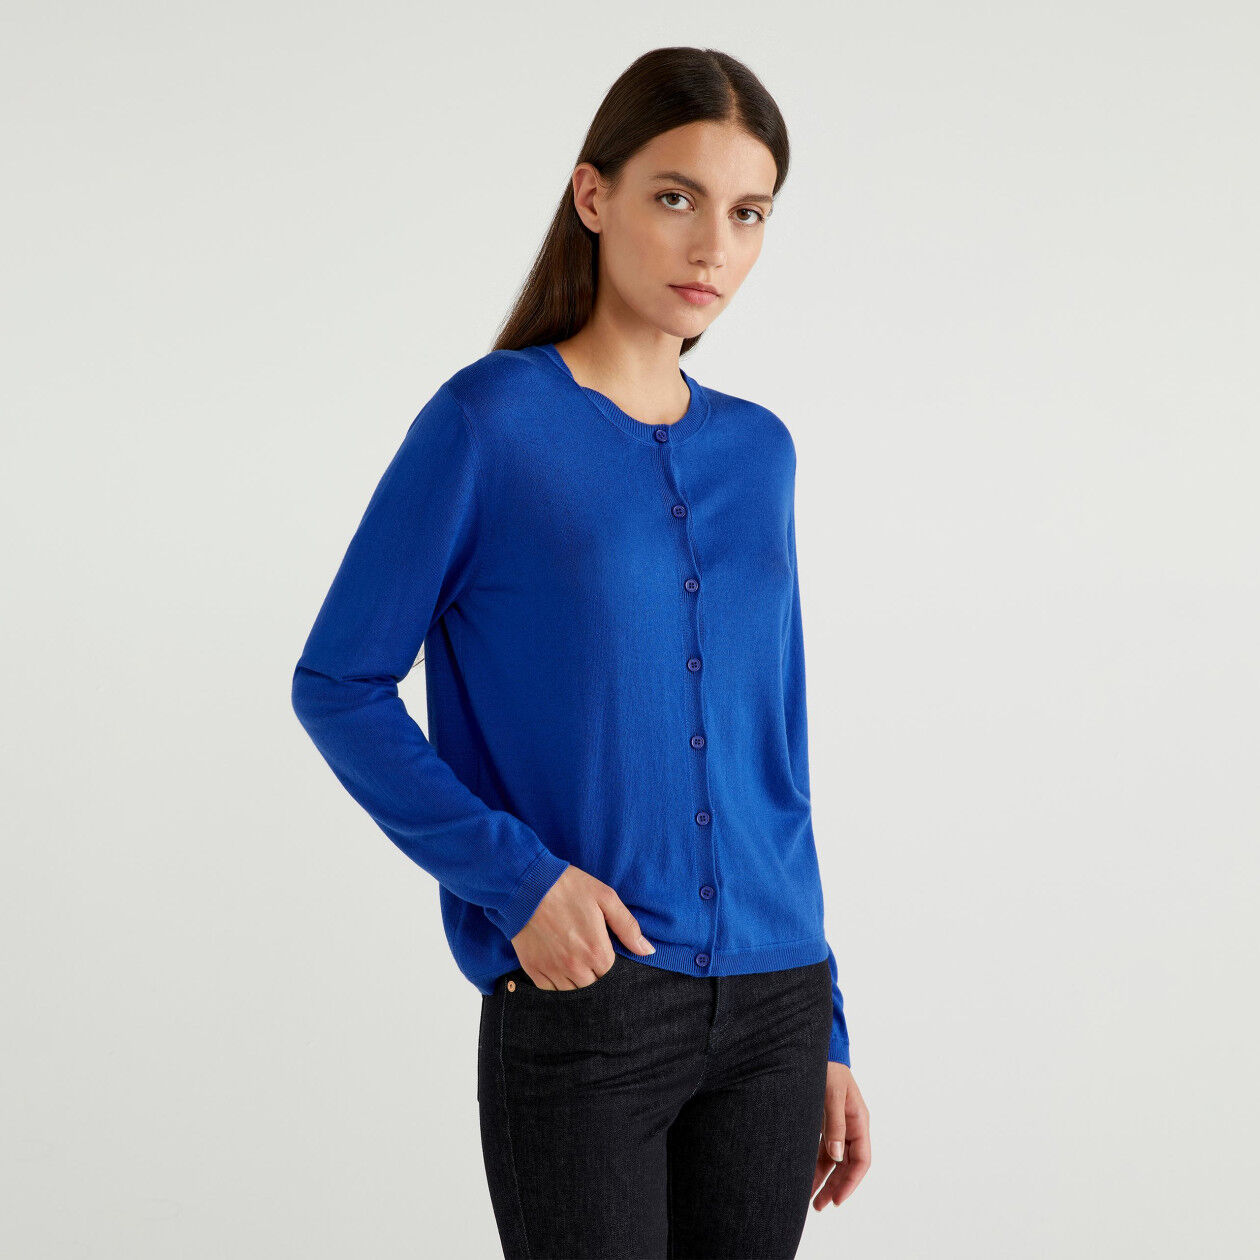 Cardigan in cotton and Modal®